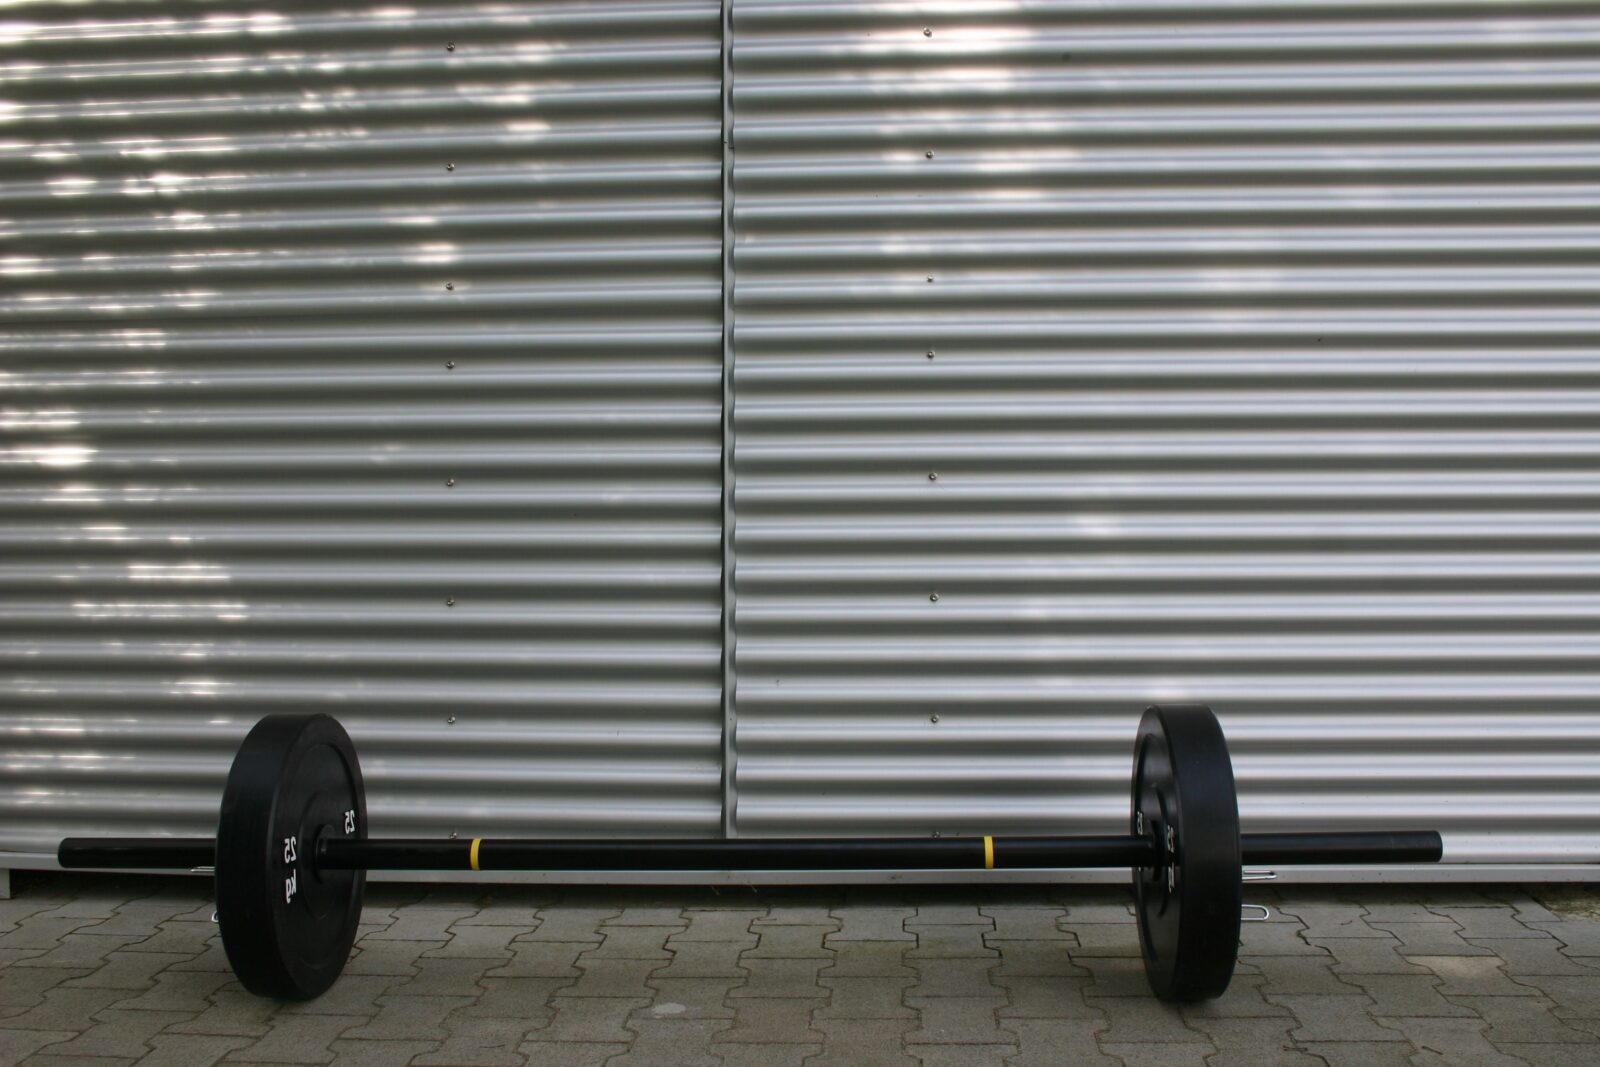 Barbell photo